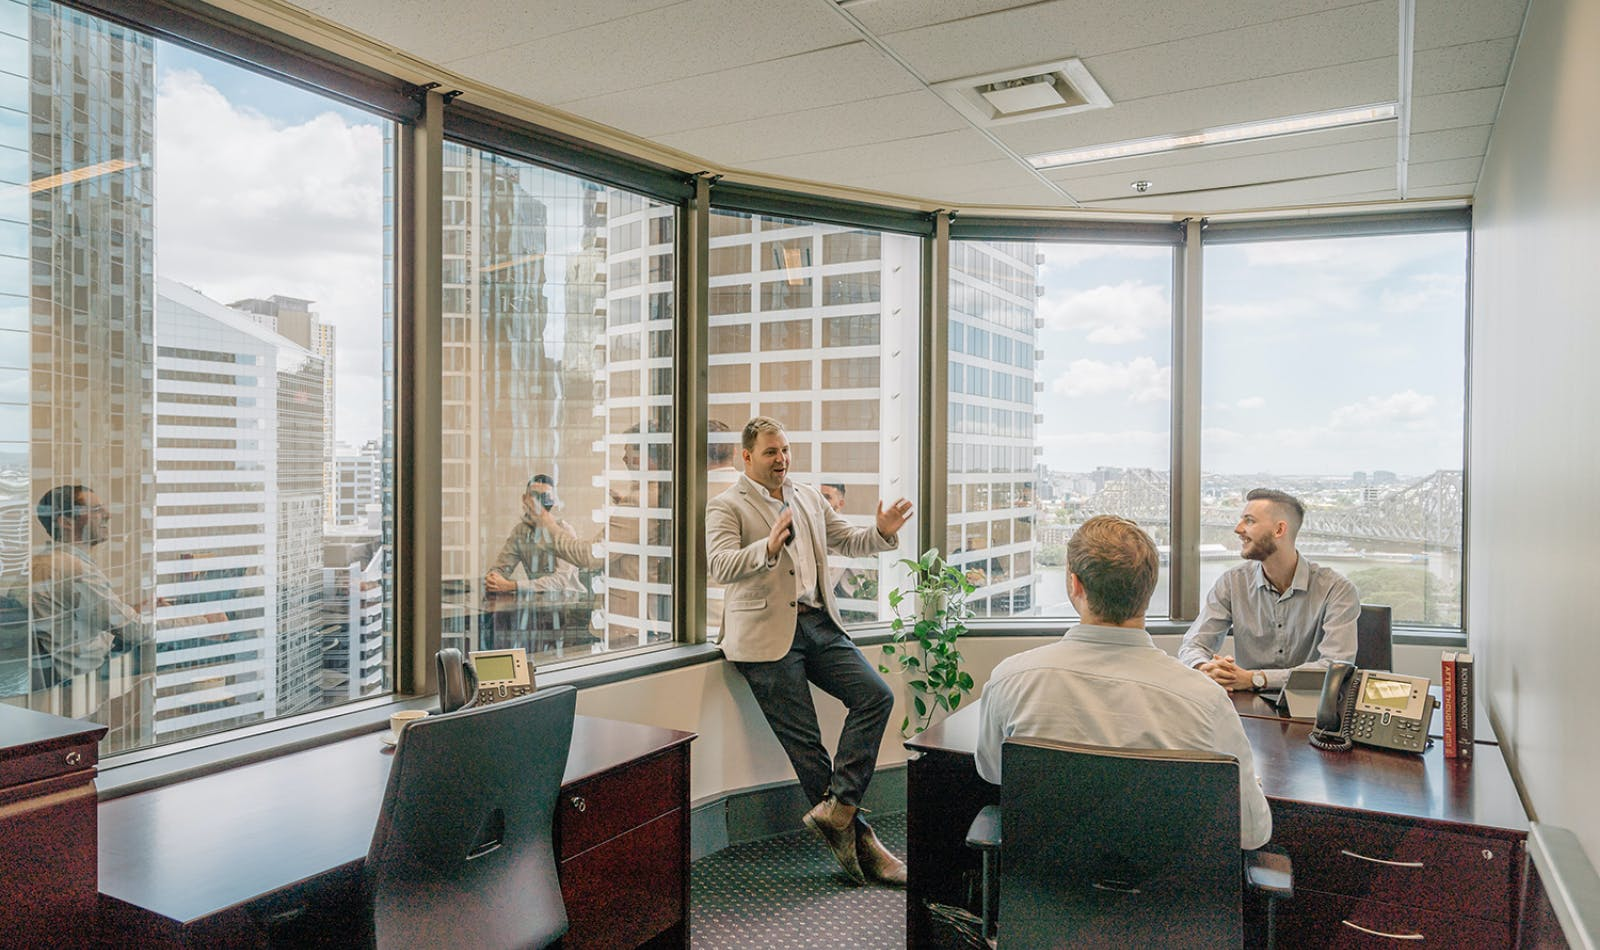 4-person collaborative workspace with views of Brisbane, serviced office at Santos Place, image 1